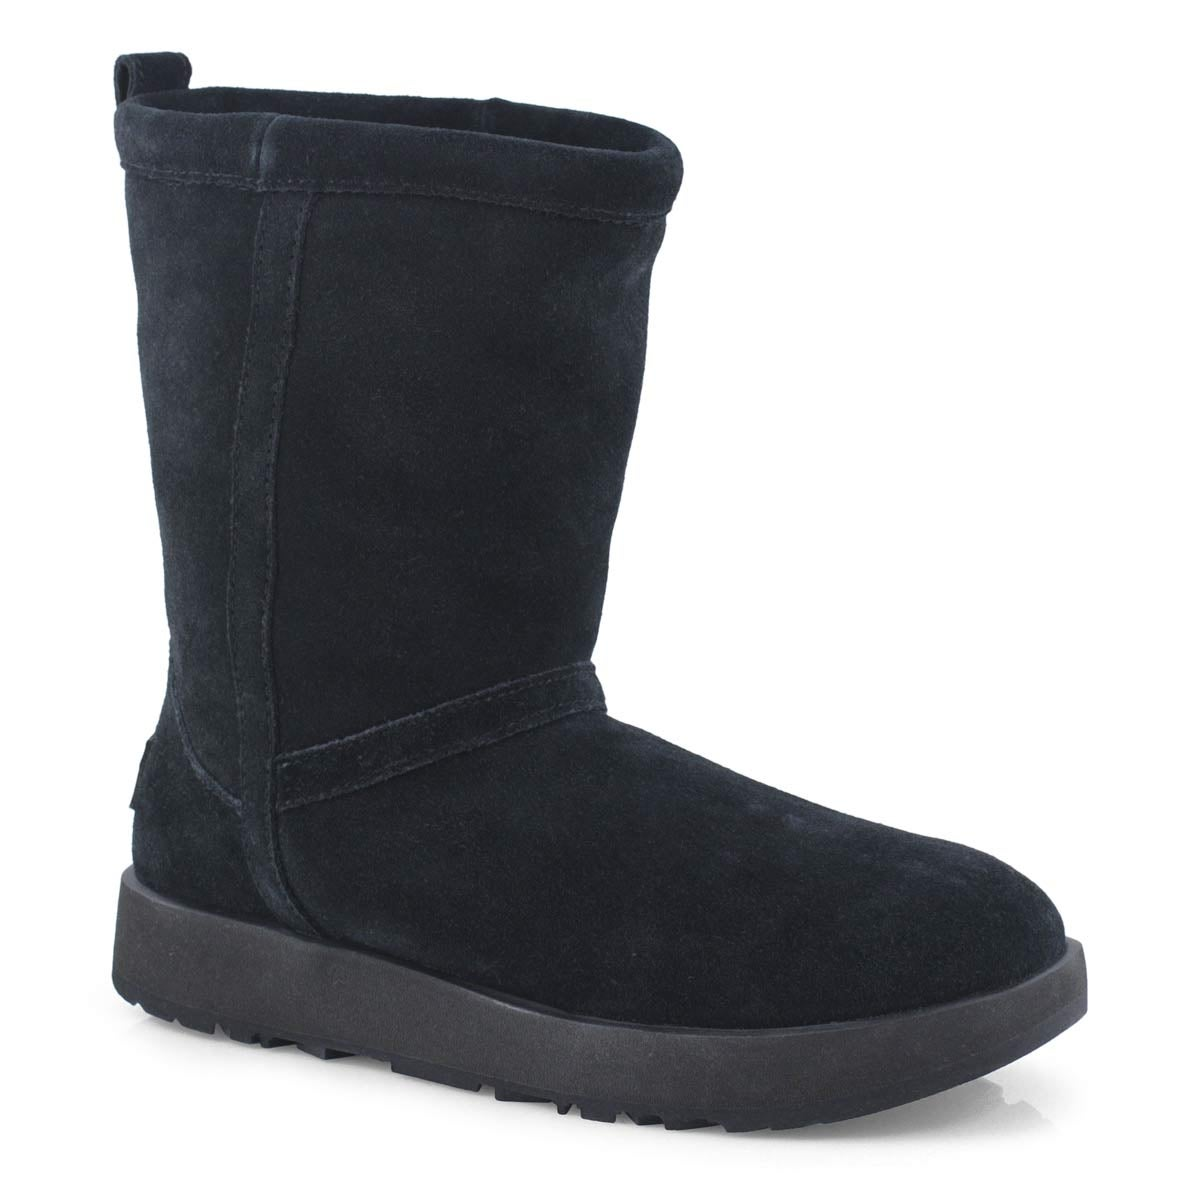 Lds Classic Short Waterproof black boot